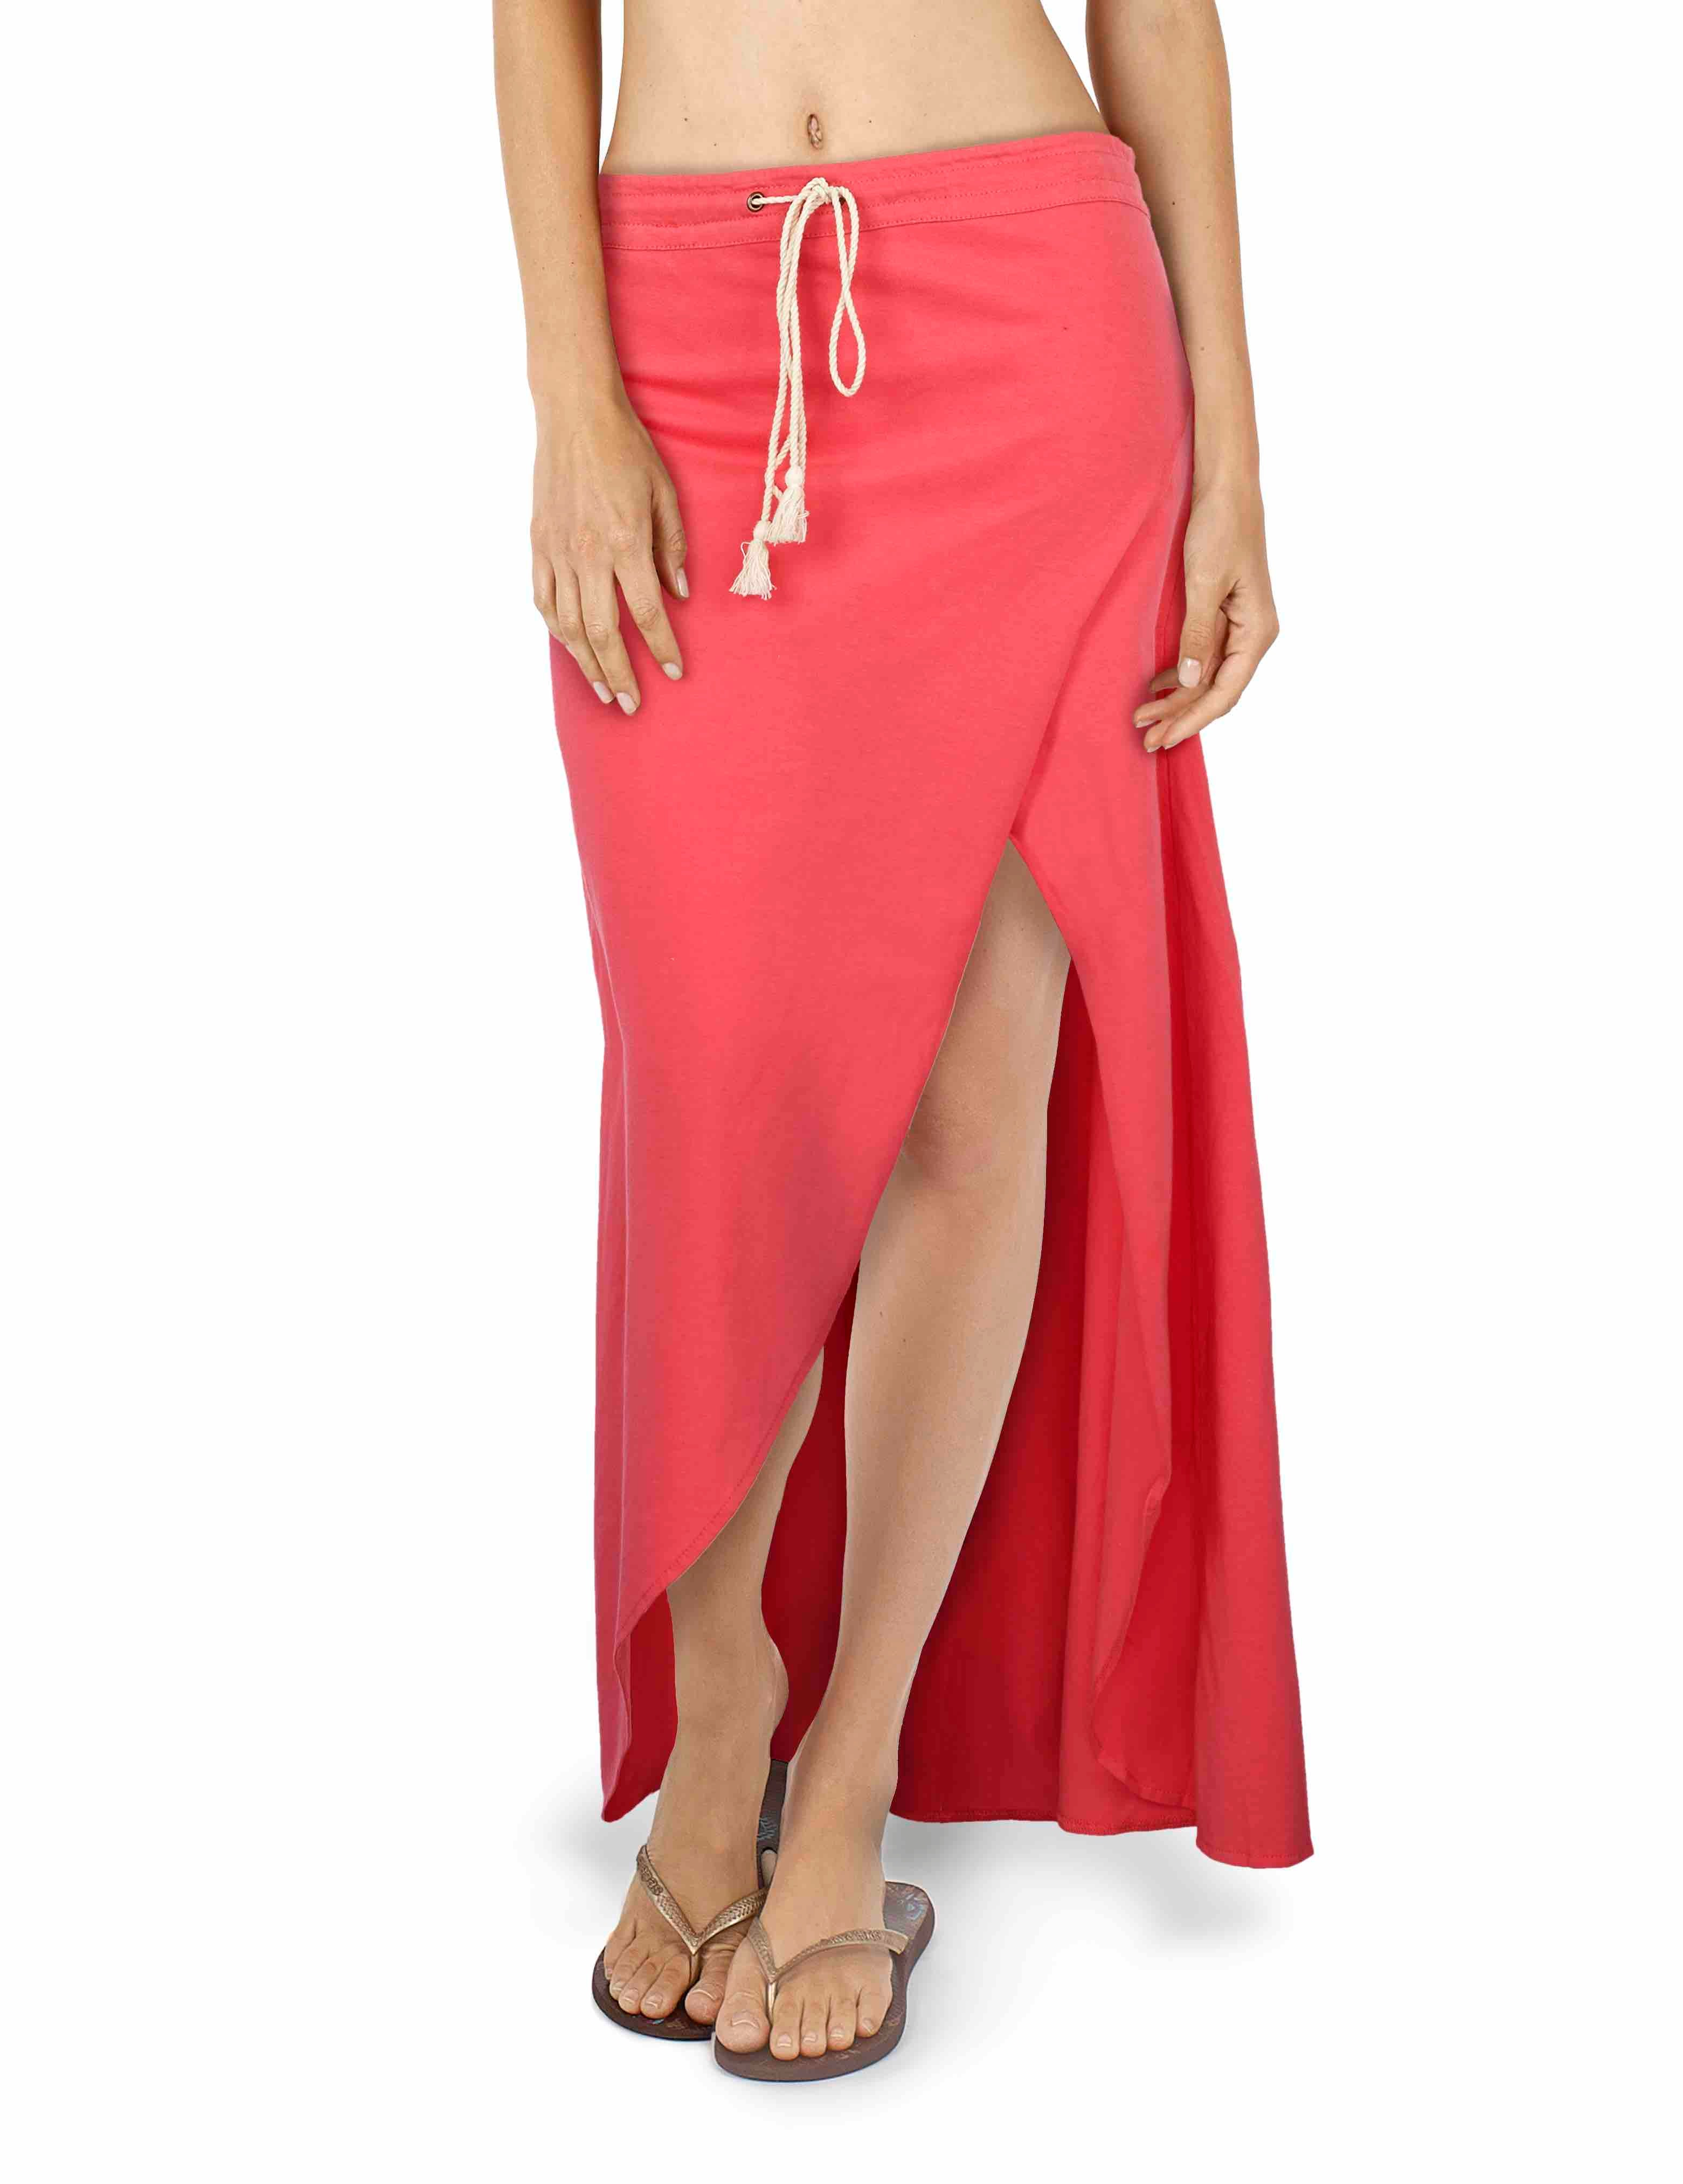 Bright Coral - Solid Convertible Skirt